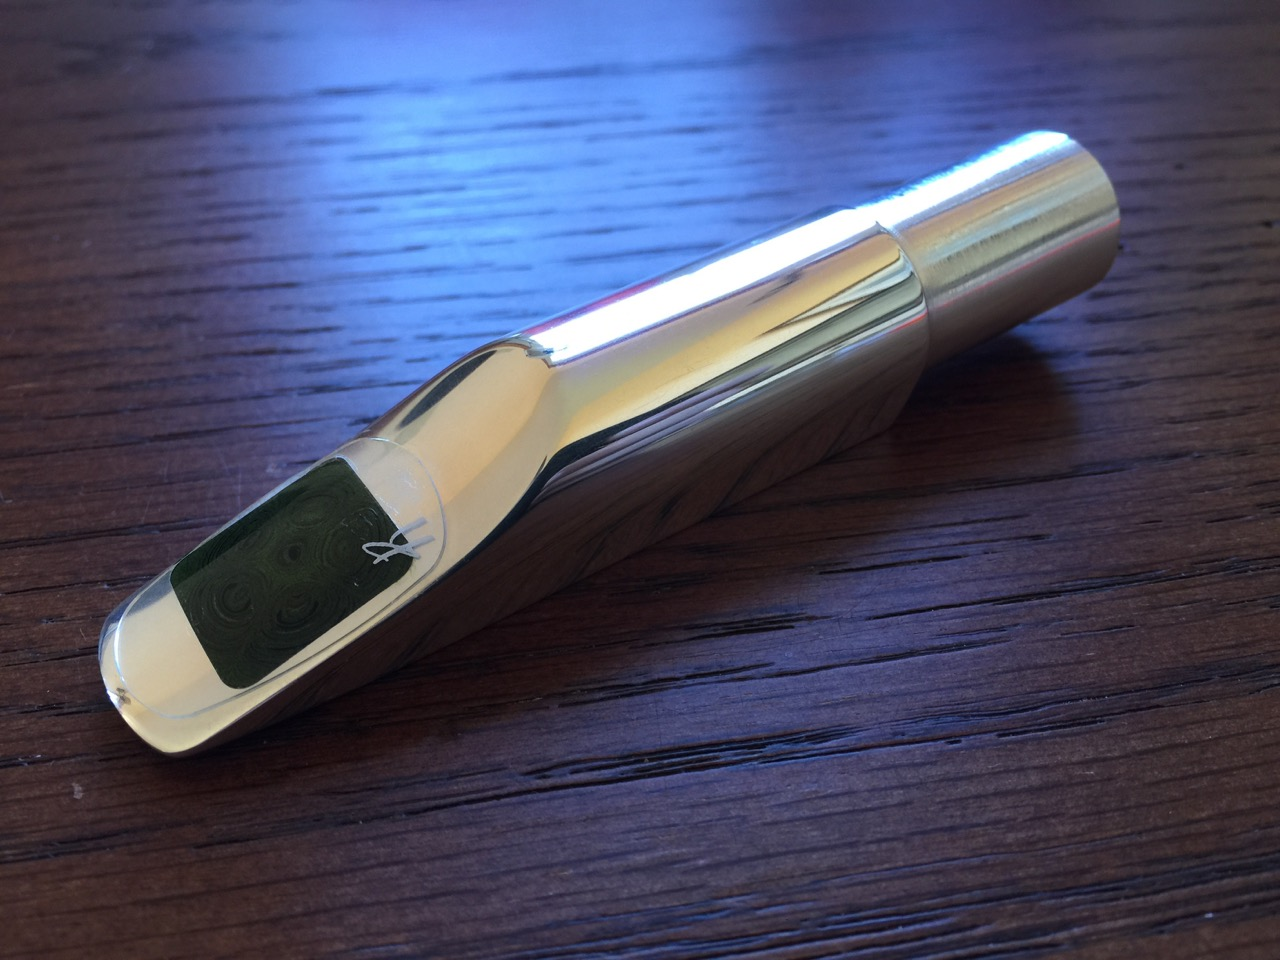 Liu Shizhao MB Prototype Tenor Saxophone Mouthpiece Review